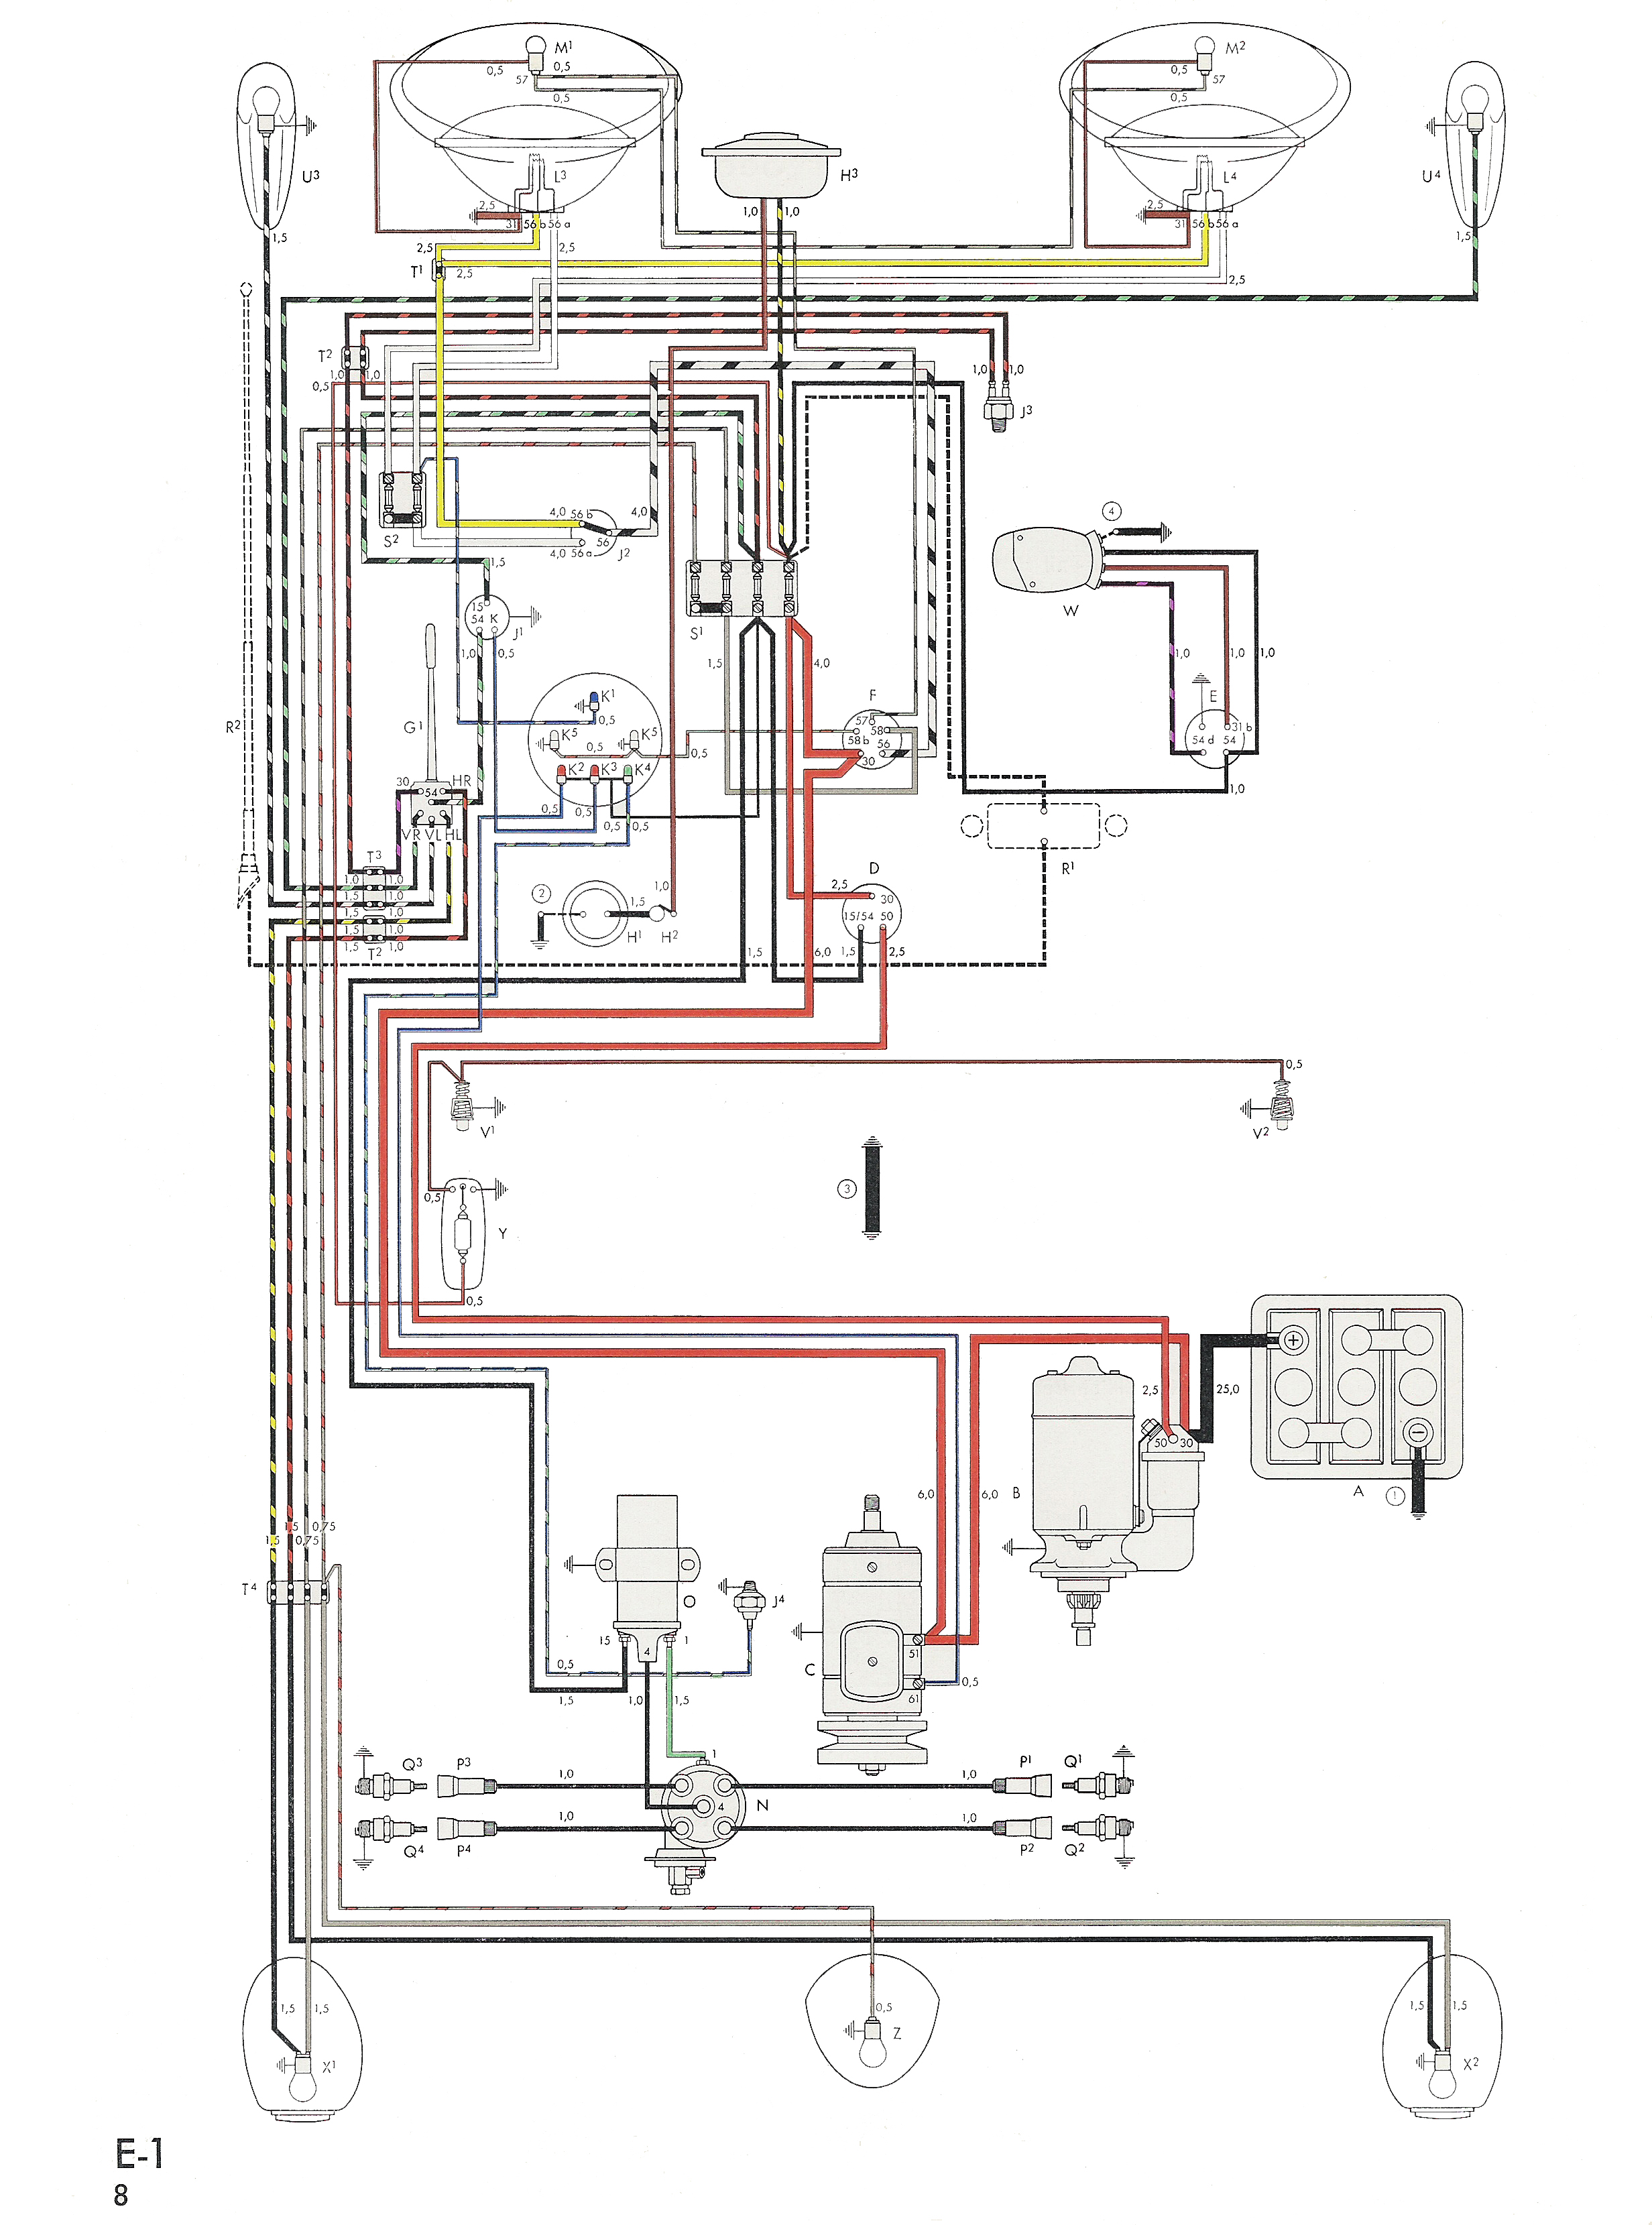 thesamba com type 1 wiring diagrams rh thesamba com vw bug engine wiring diagram VW Engine Wiring Diagram